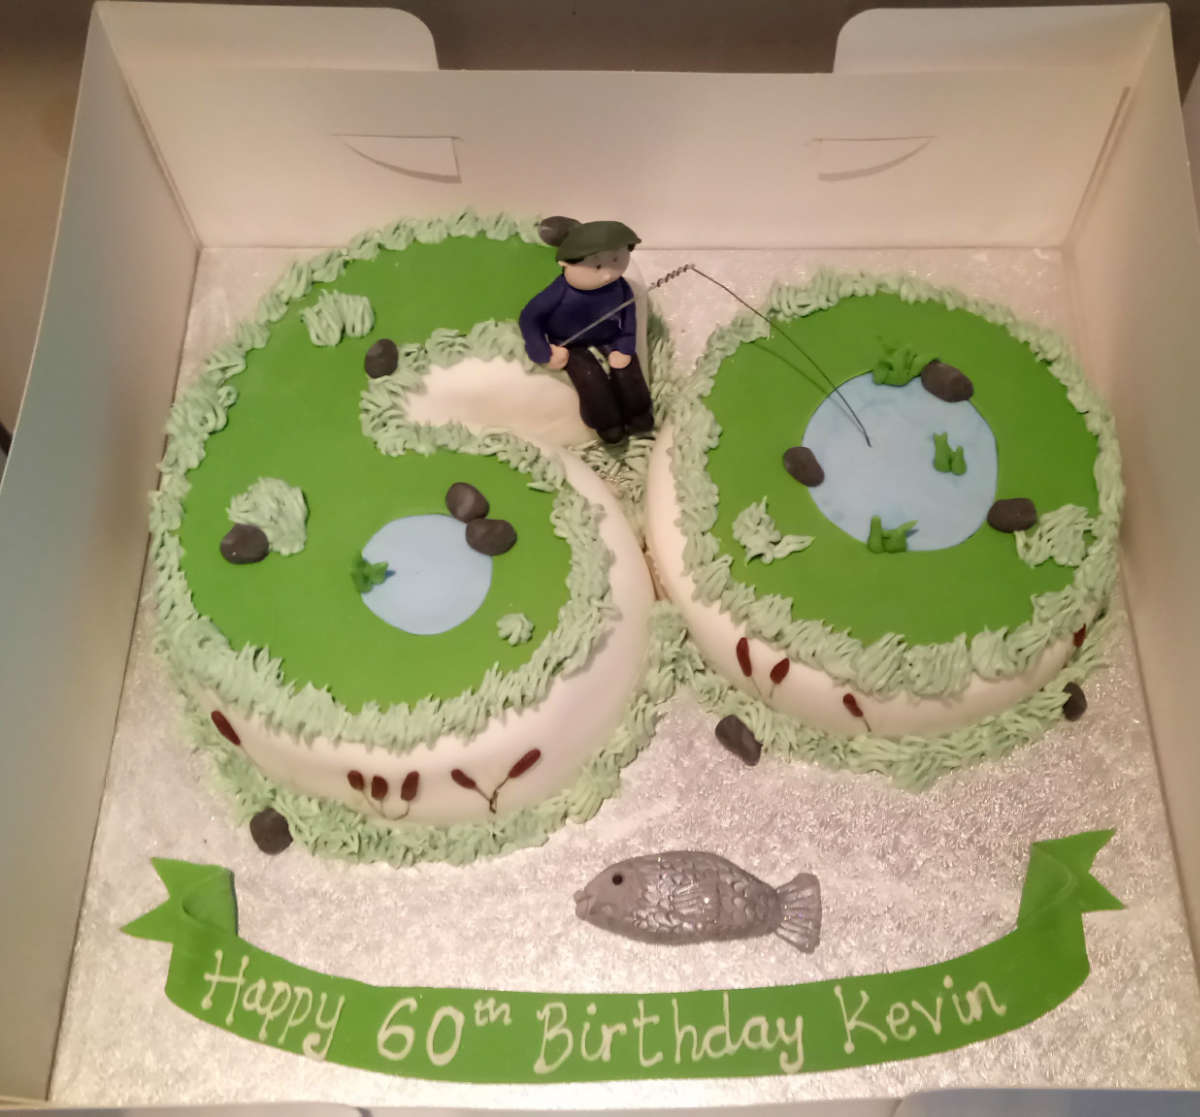 Admirable Custom Birthday Cakes For Him Studio Cakes And Events Funny Birthday Cards Online Alyptdamsfinfo